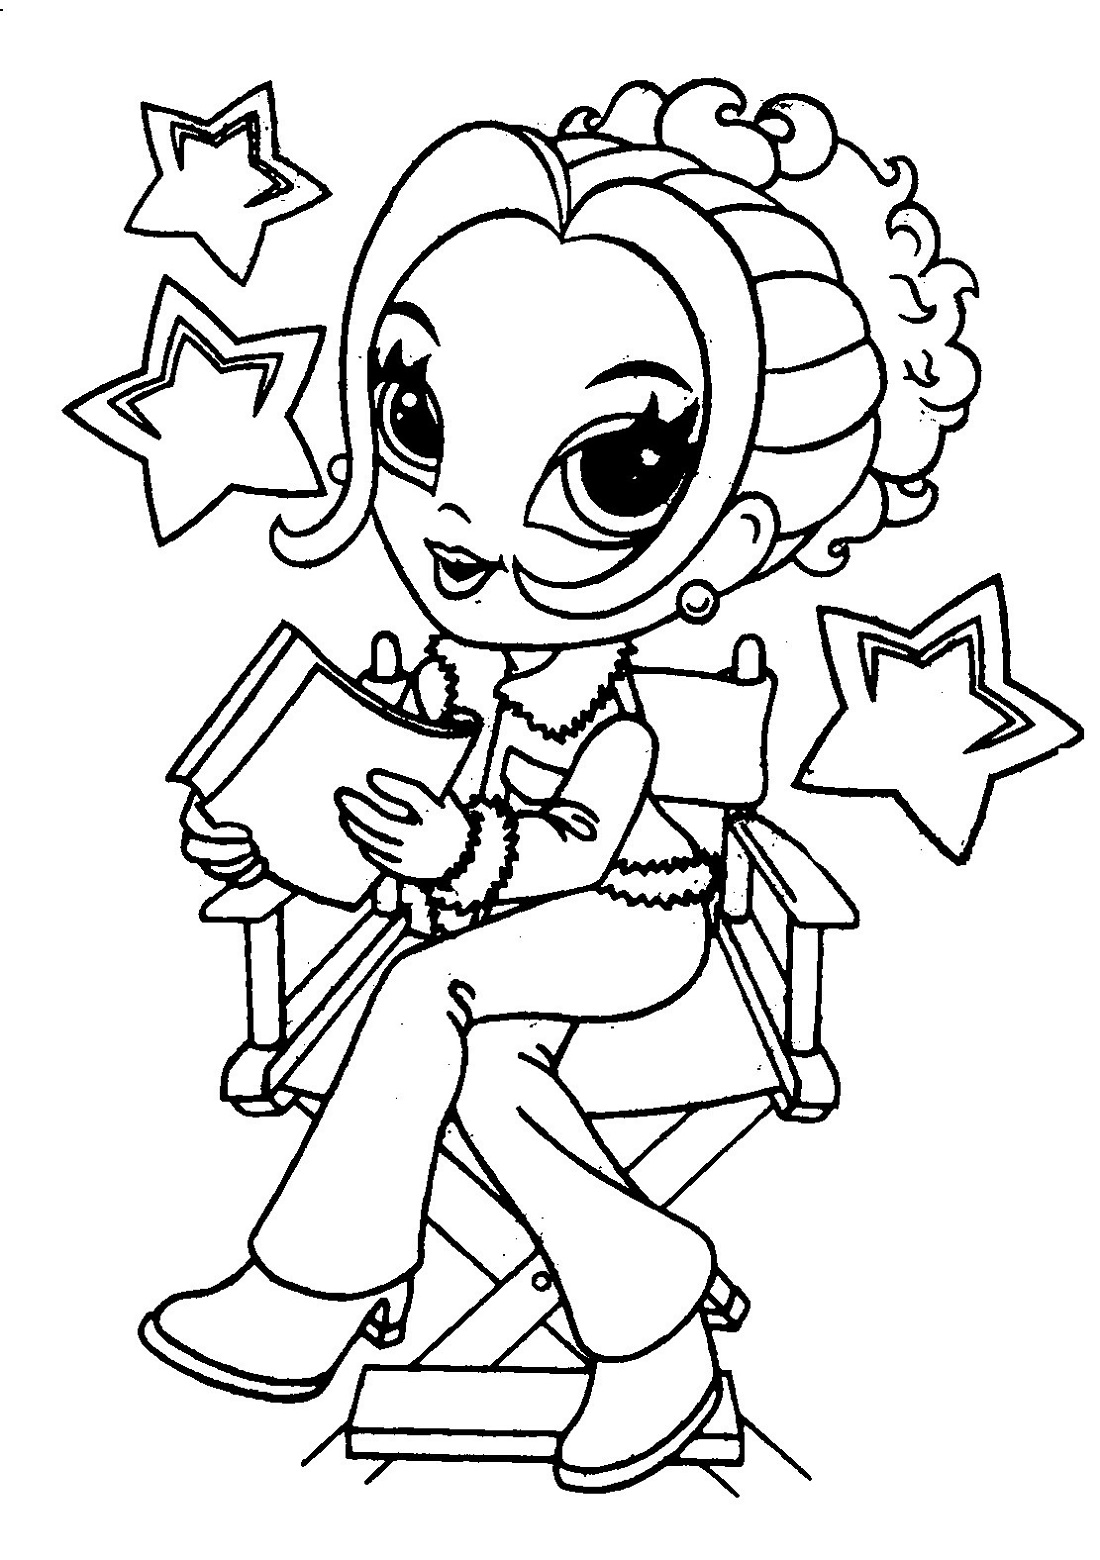 Coloring Sheets for Girl